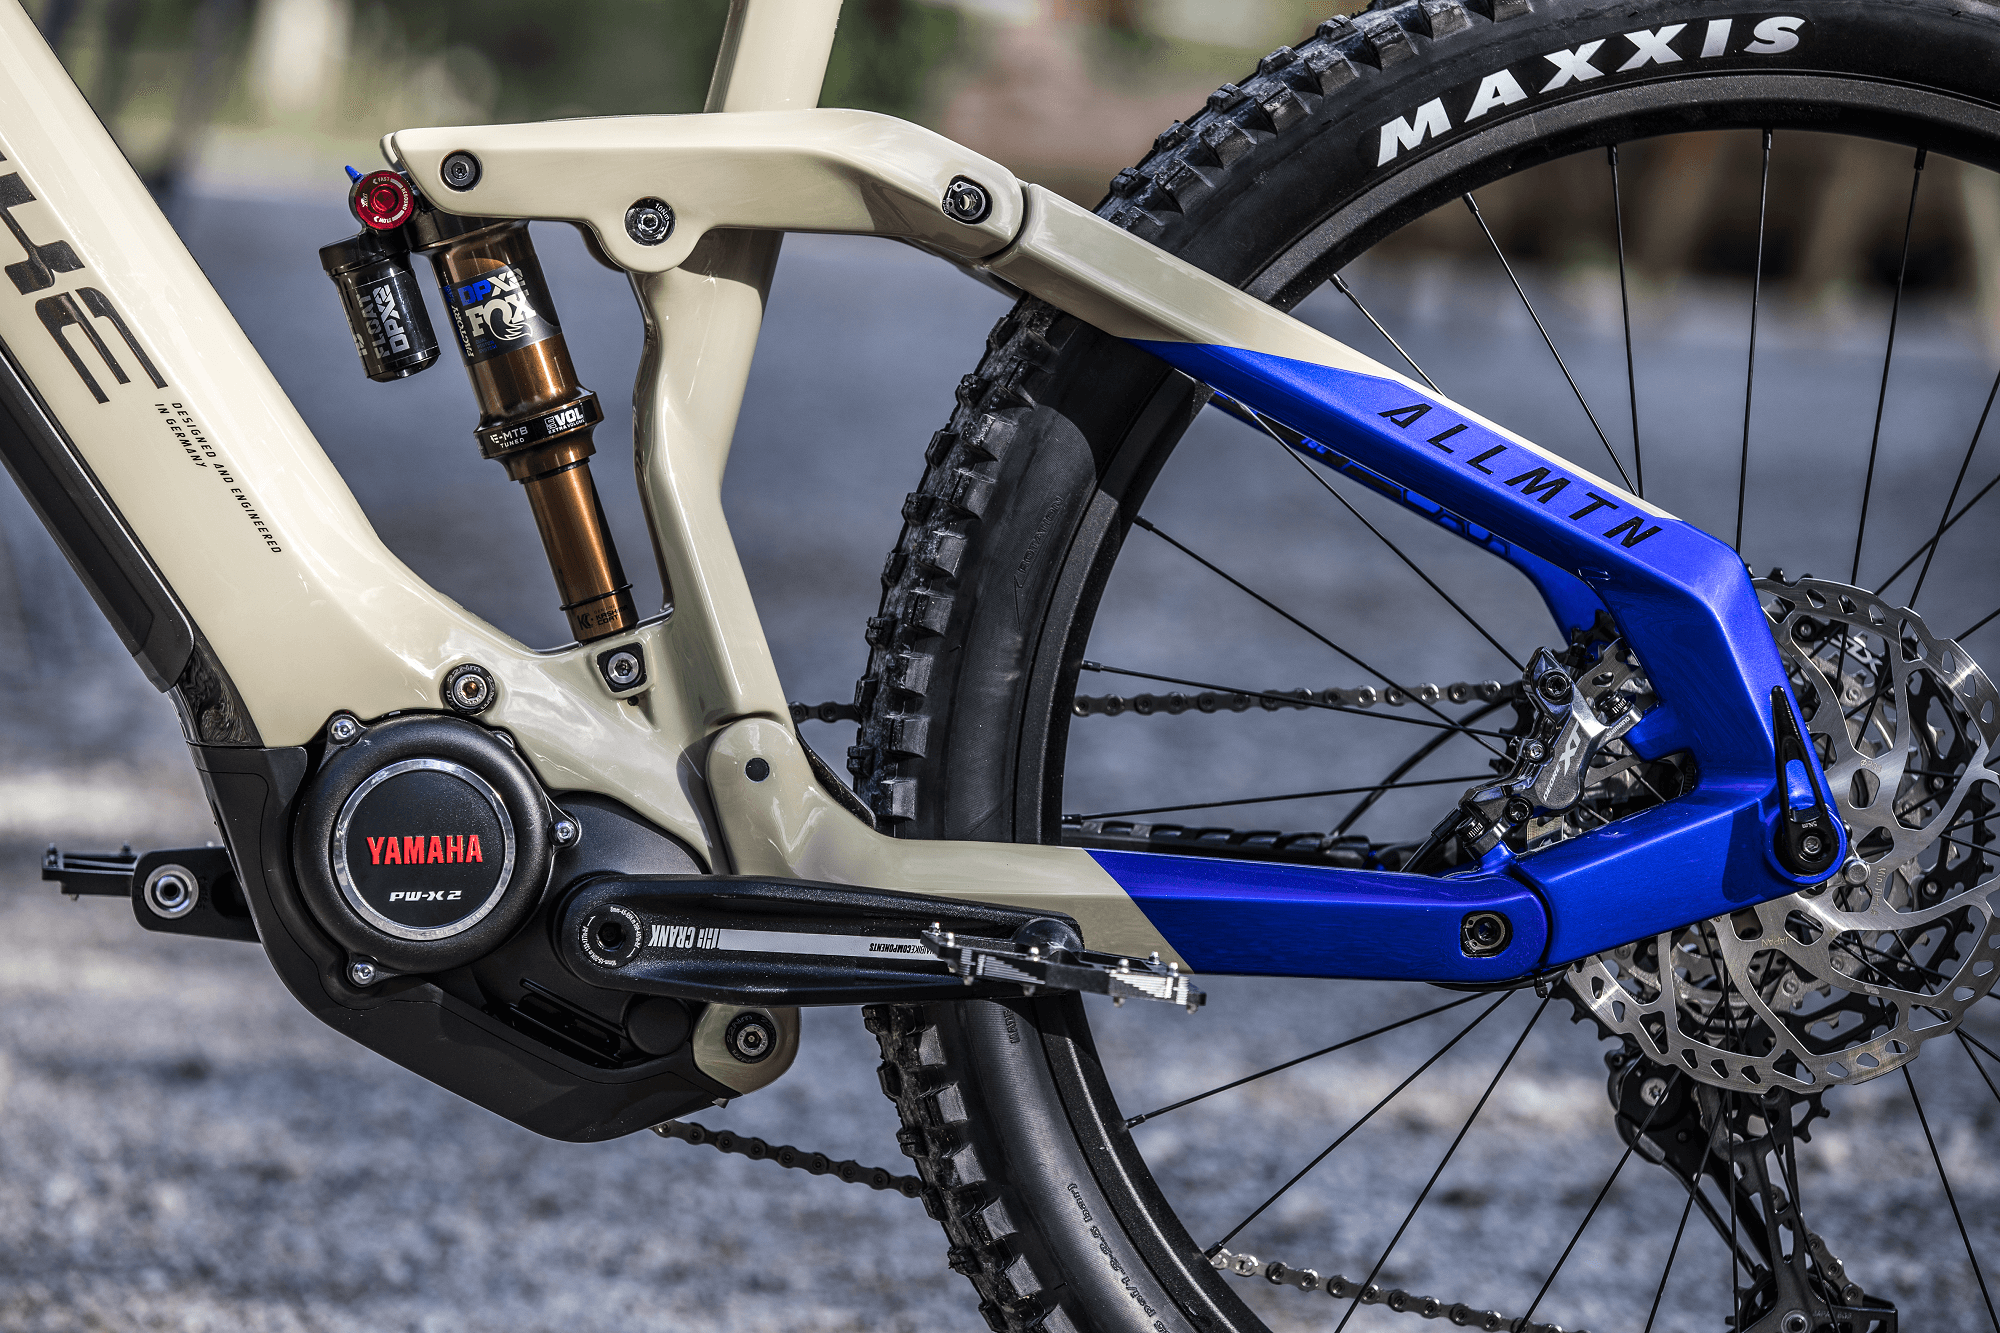 Close-up of Yamaha PW-X2 motor on Haibike AllMtn 7 eMTB